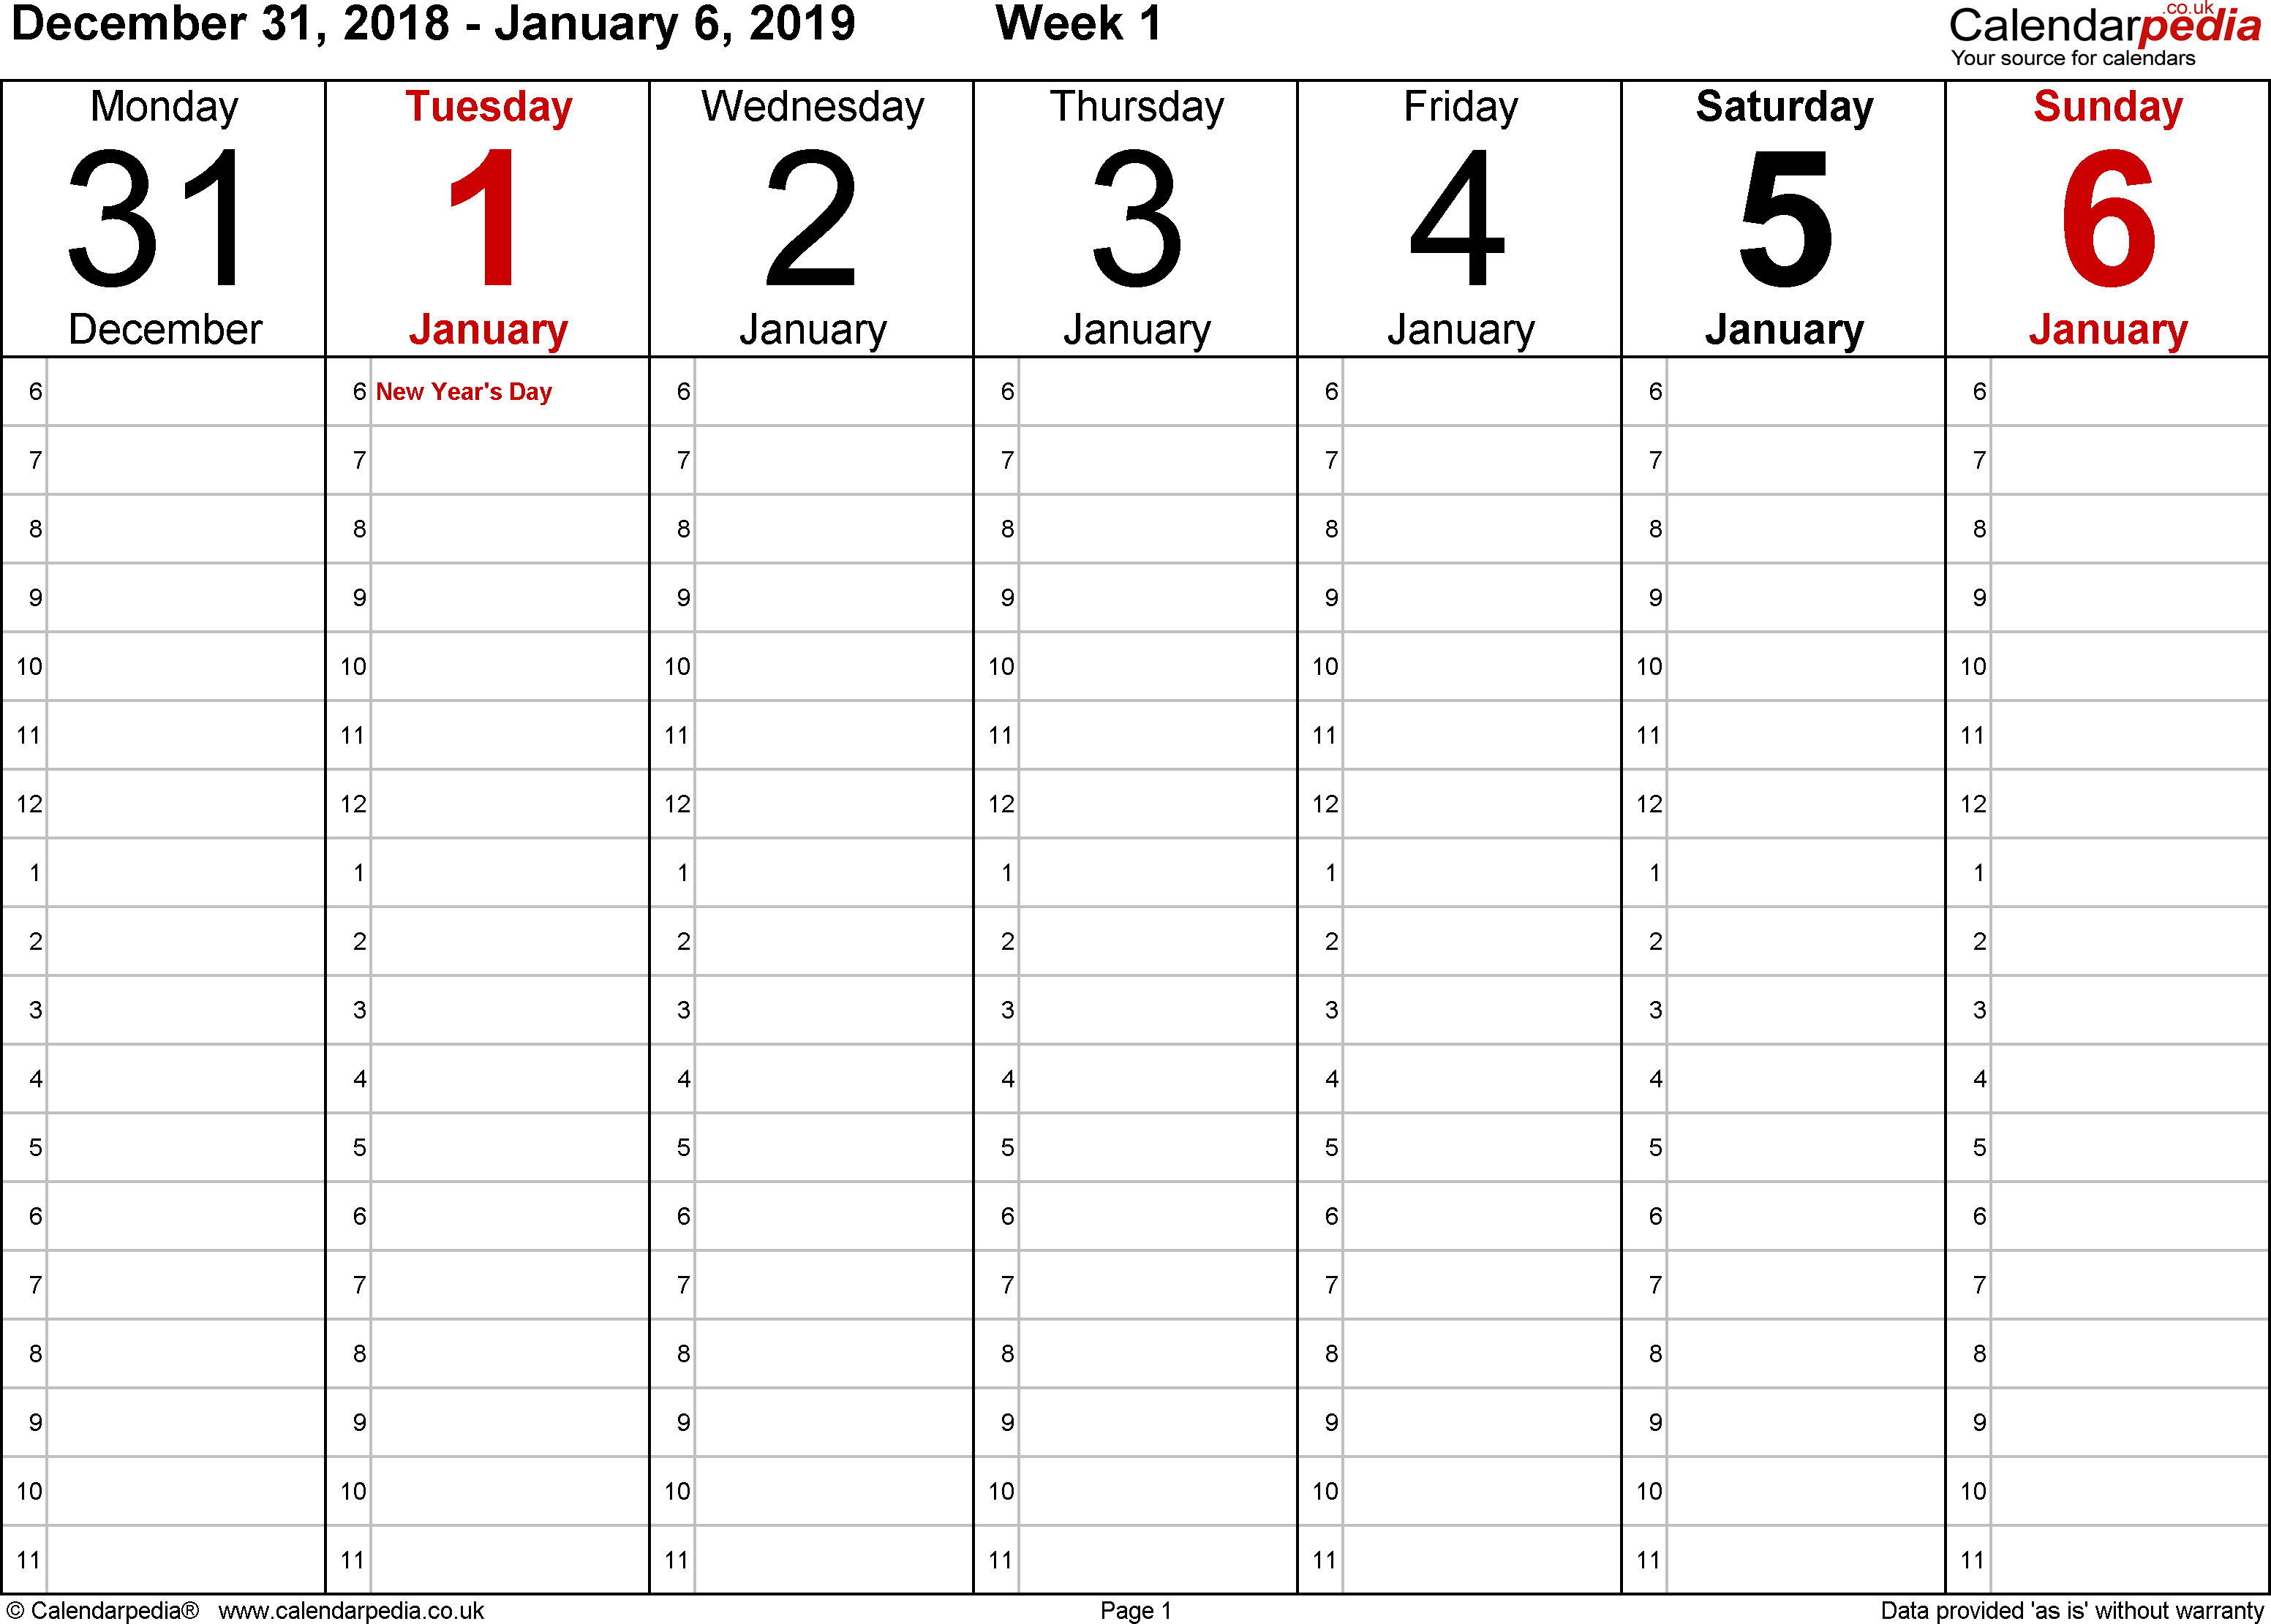 One Week Schedule Template Weekly Calendar 2019 Uk Free Printable Templates for Excel